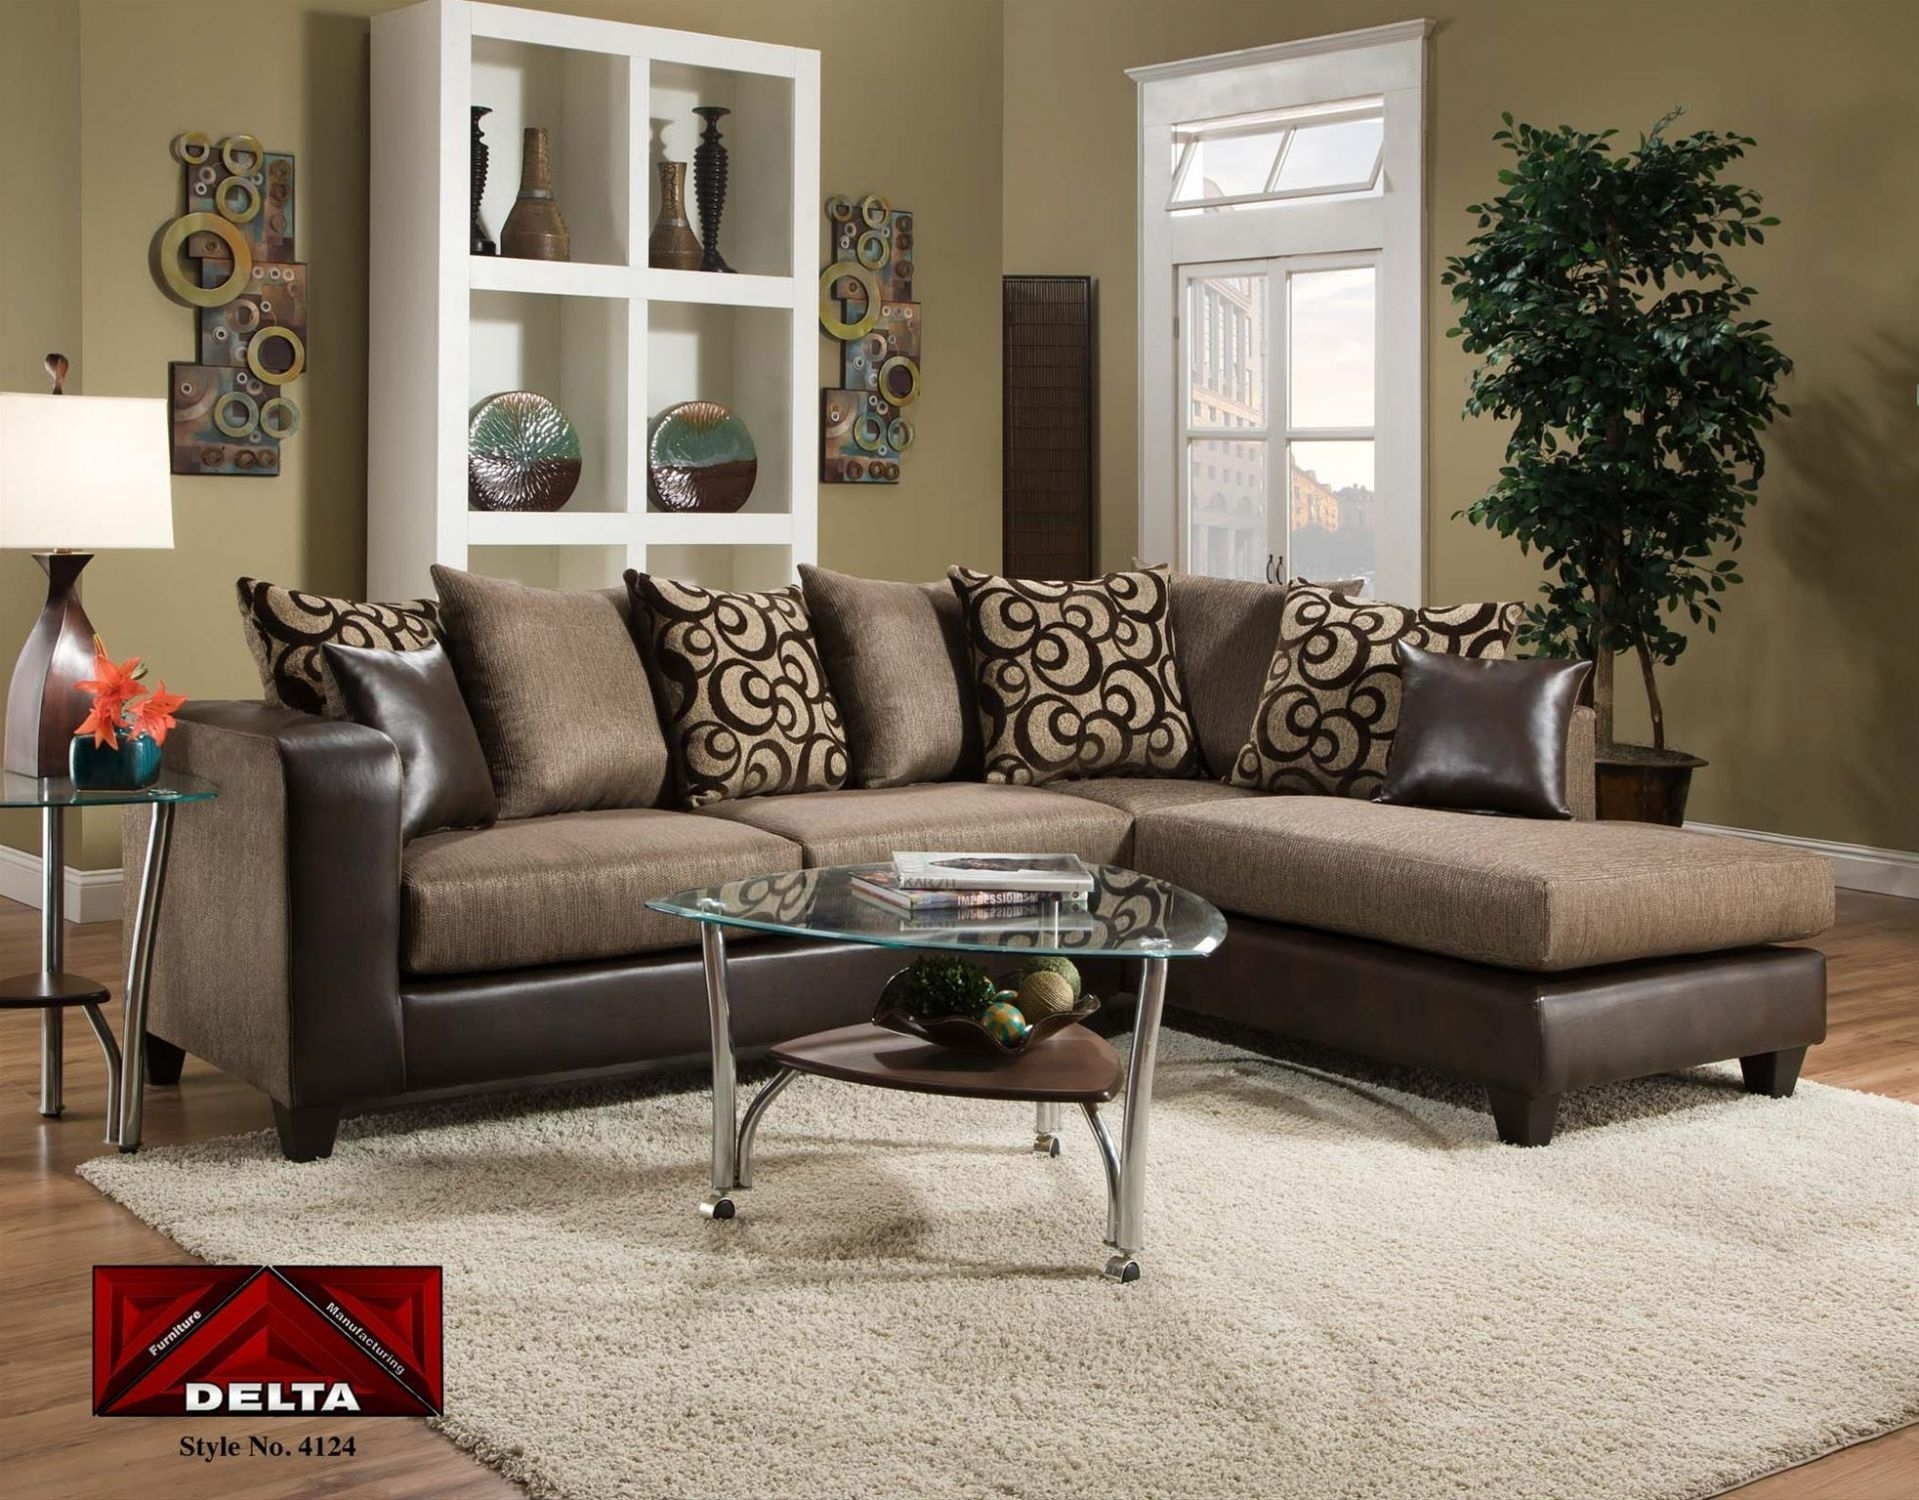 Update Your Living Room With Our Designer Chaise Sectional | $798 Throughout Joplin Mo Sectional Sofas (View 4 of 10)